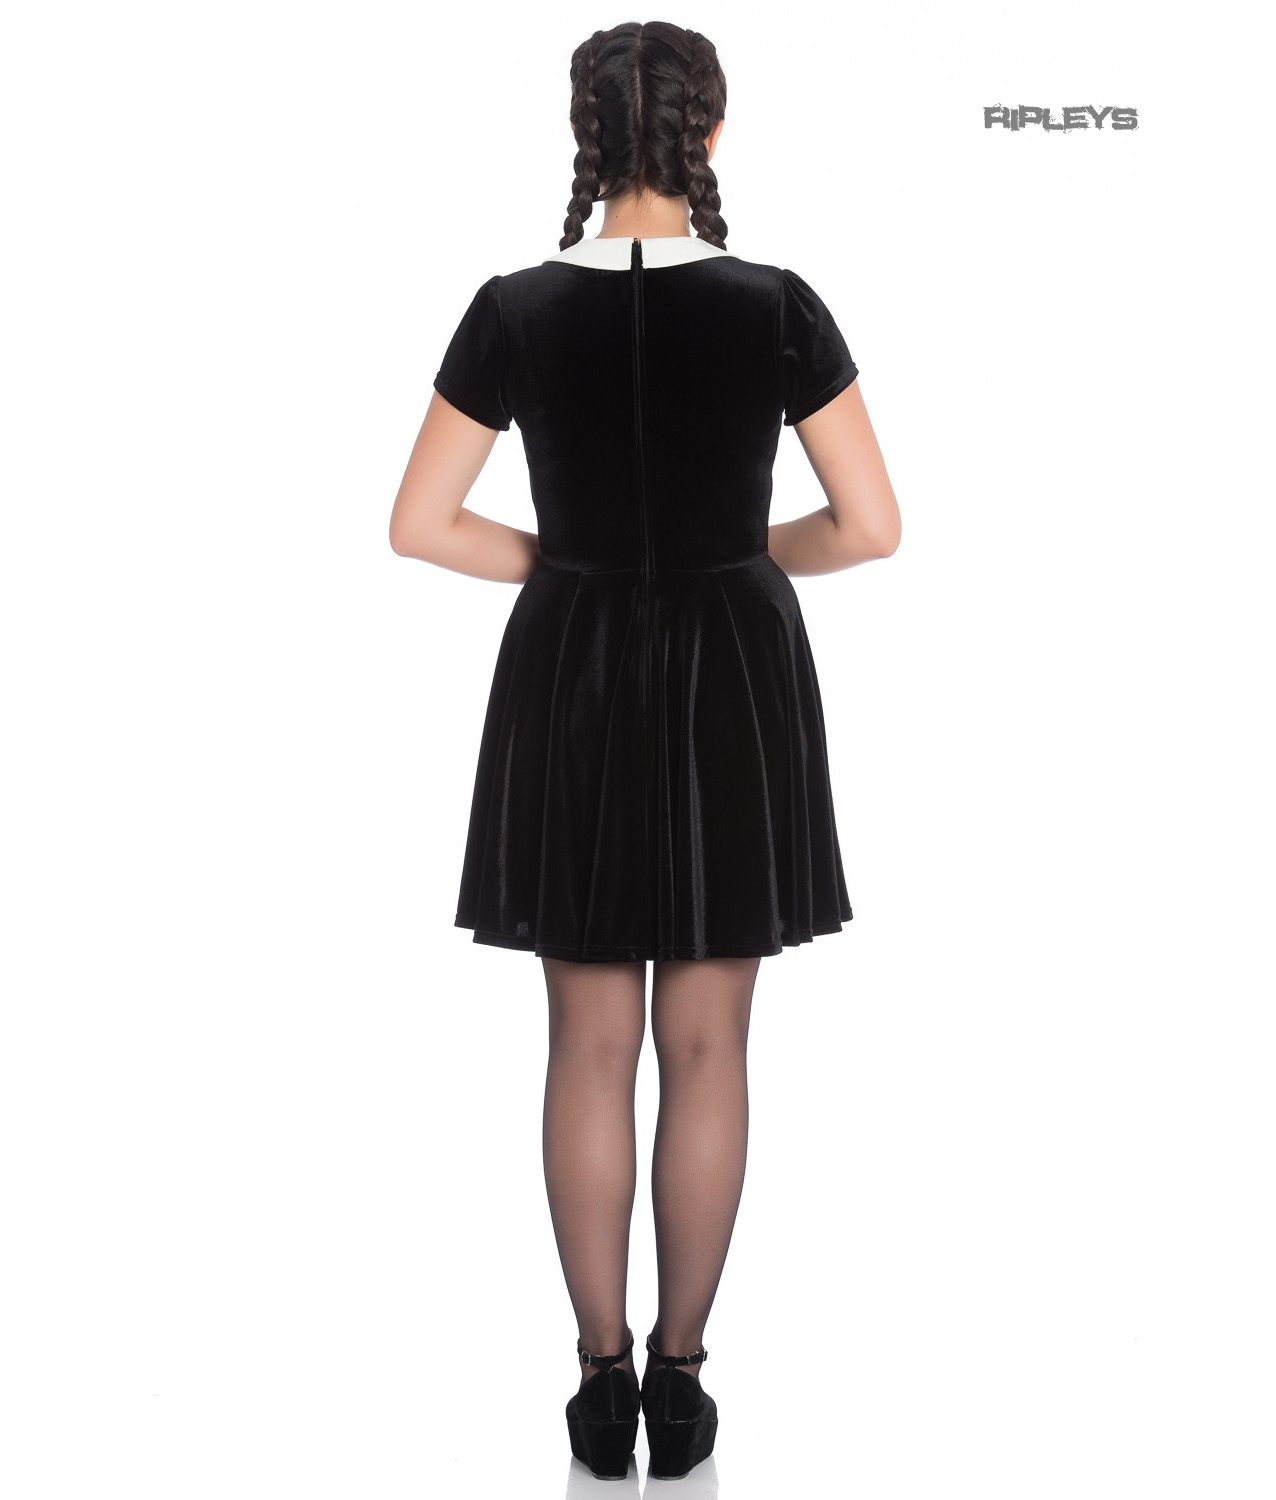 Hell-Bunny-Gothic-Mini-Skater-Dress-MISS-MUFFET-Spiders-Black-Velvet-All-Sizes thumbnail 4